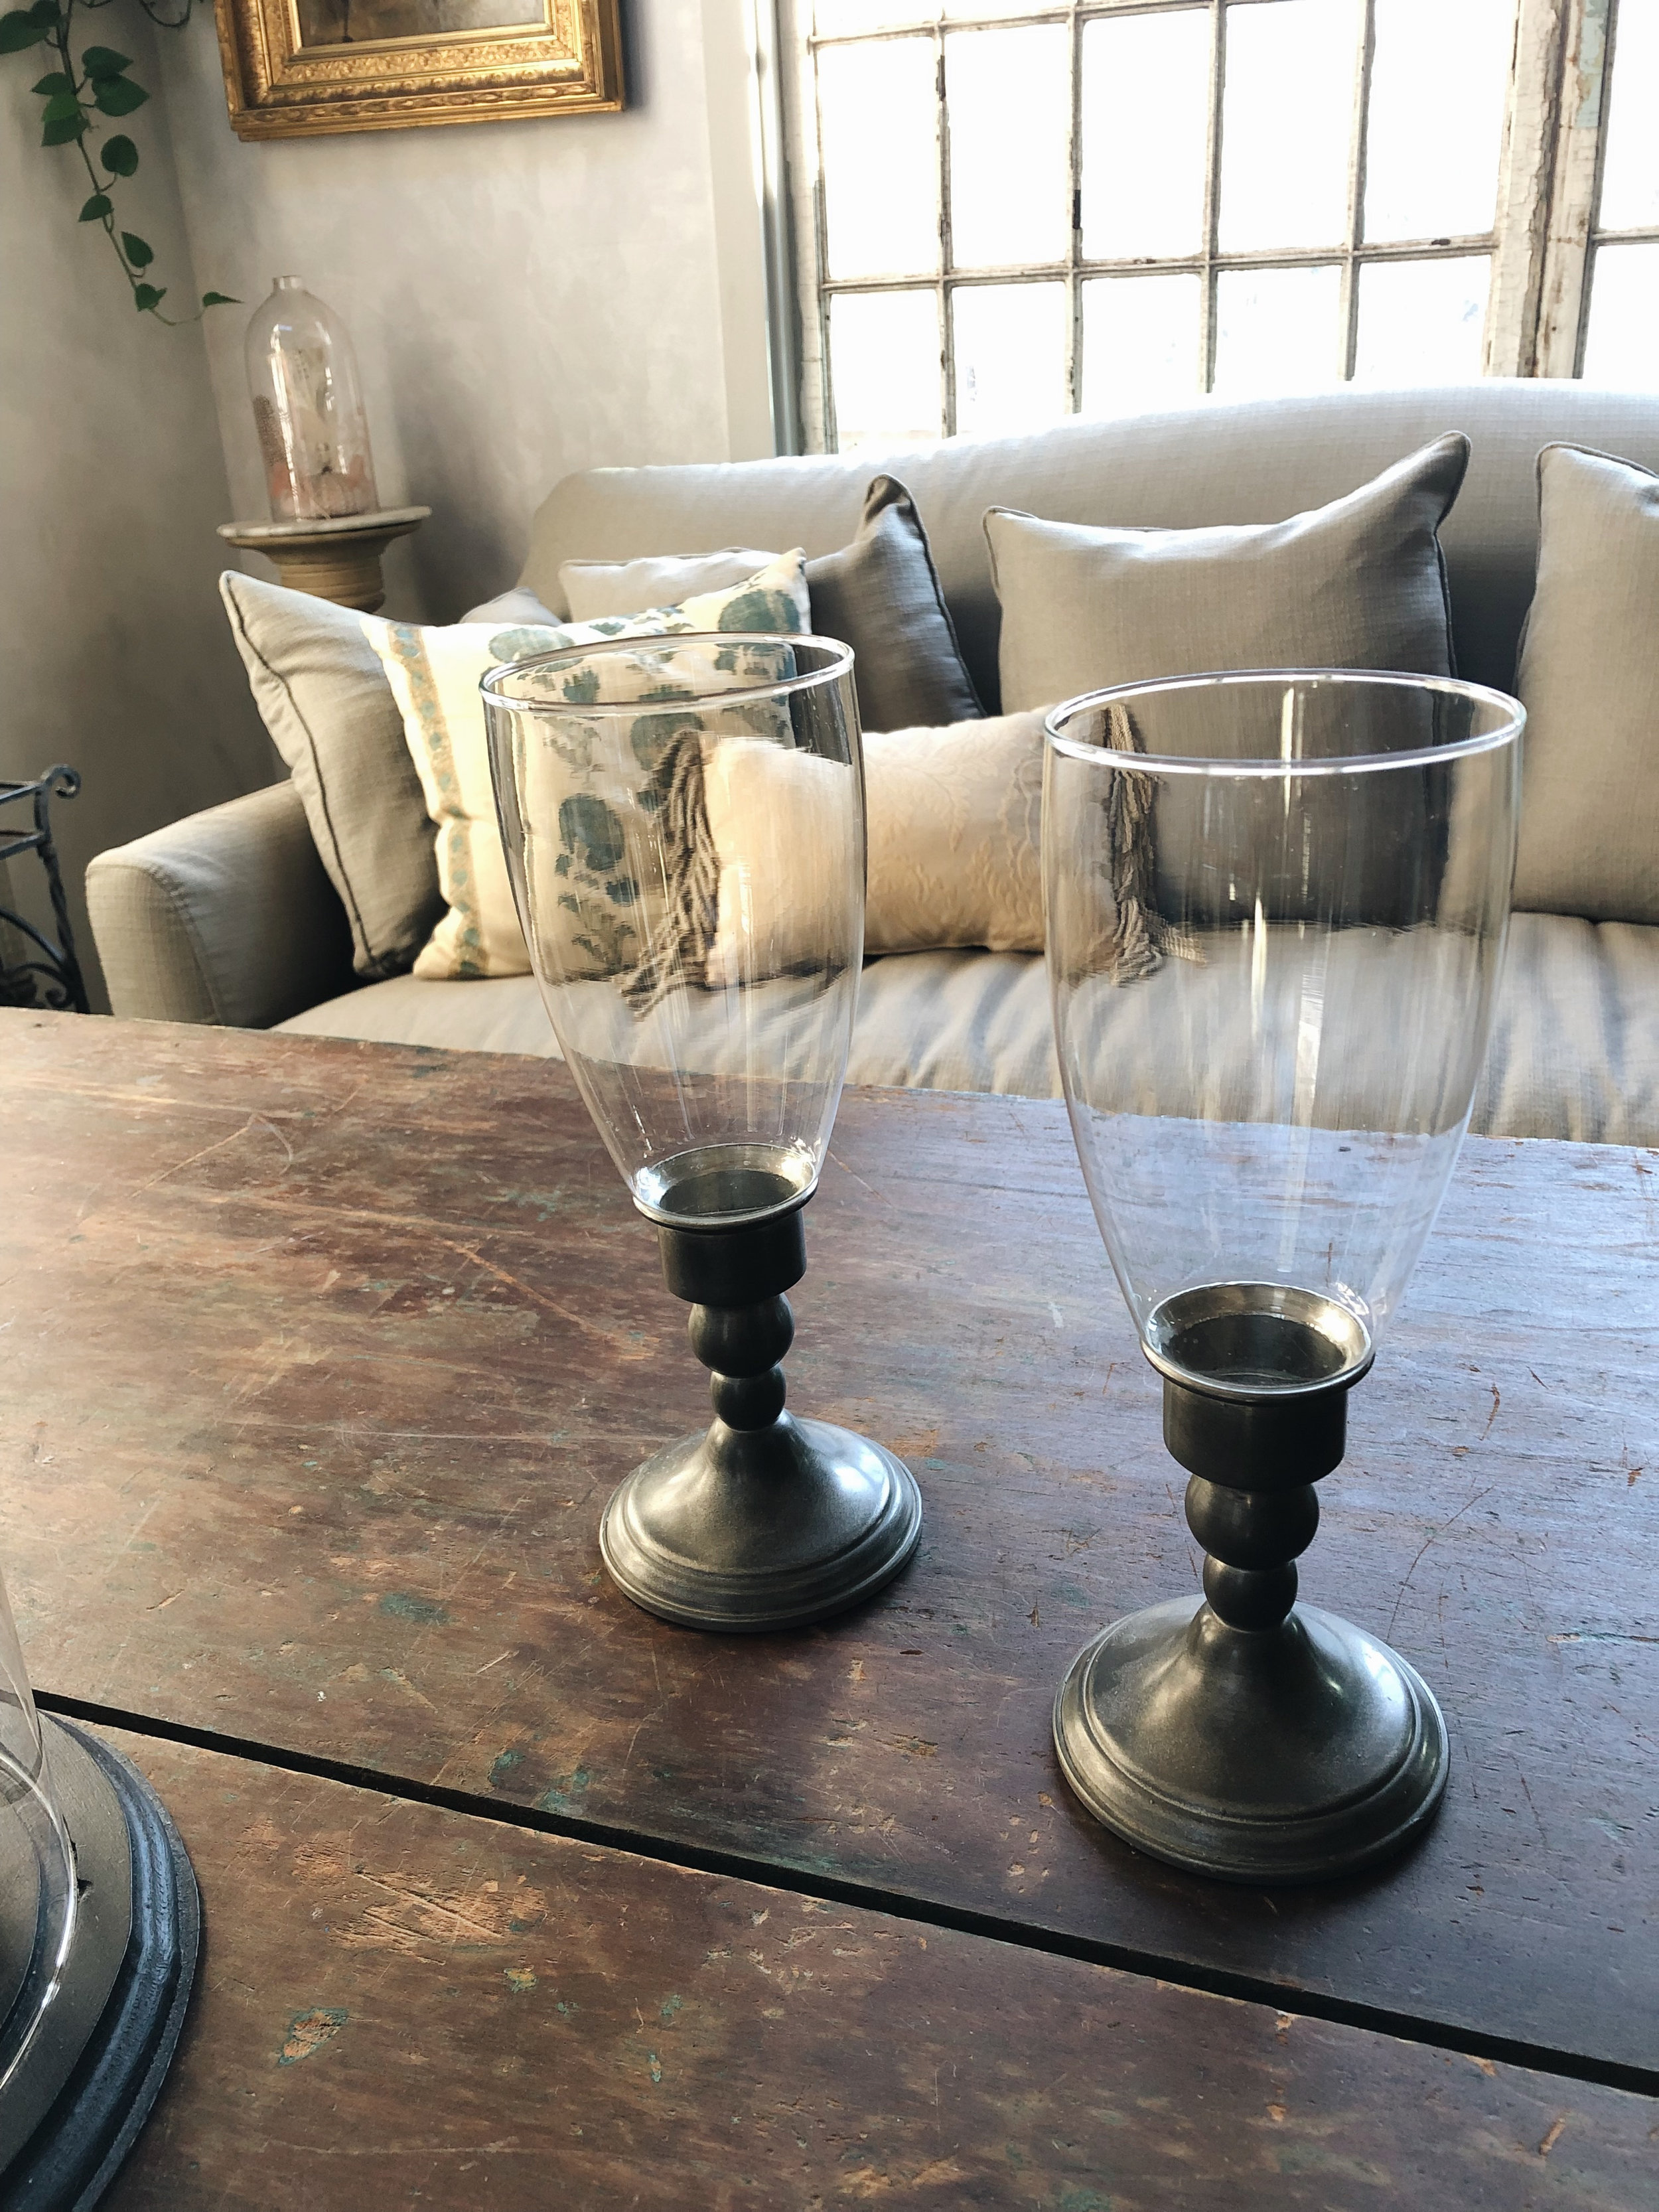 Pewter Hurricane Candlesticks - These pewter and glass hurricane candlesticks are hard to find! 10 1/2